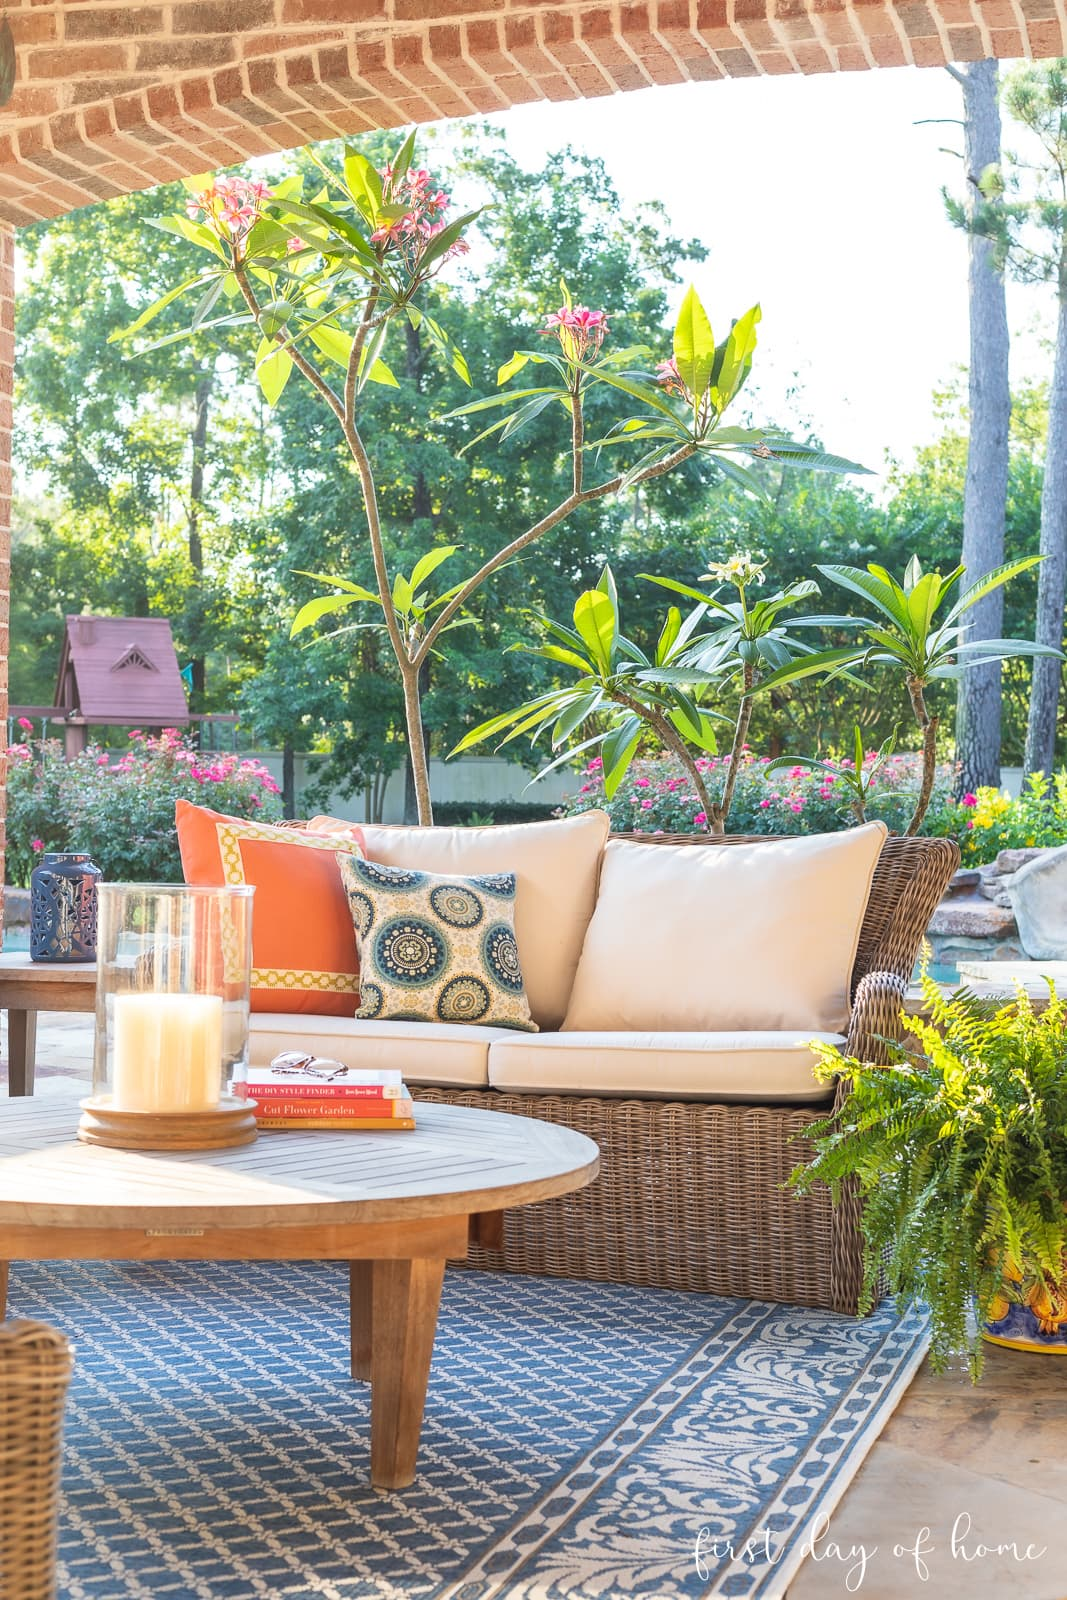 Back patio with area rug, settee and outdoor throw pillows at dawn